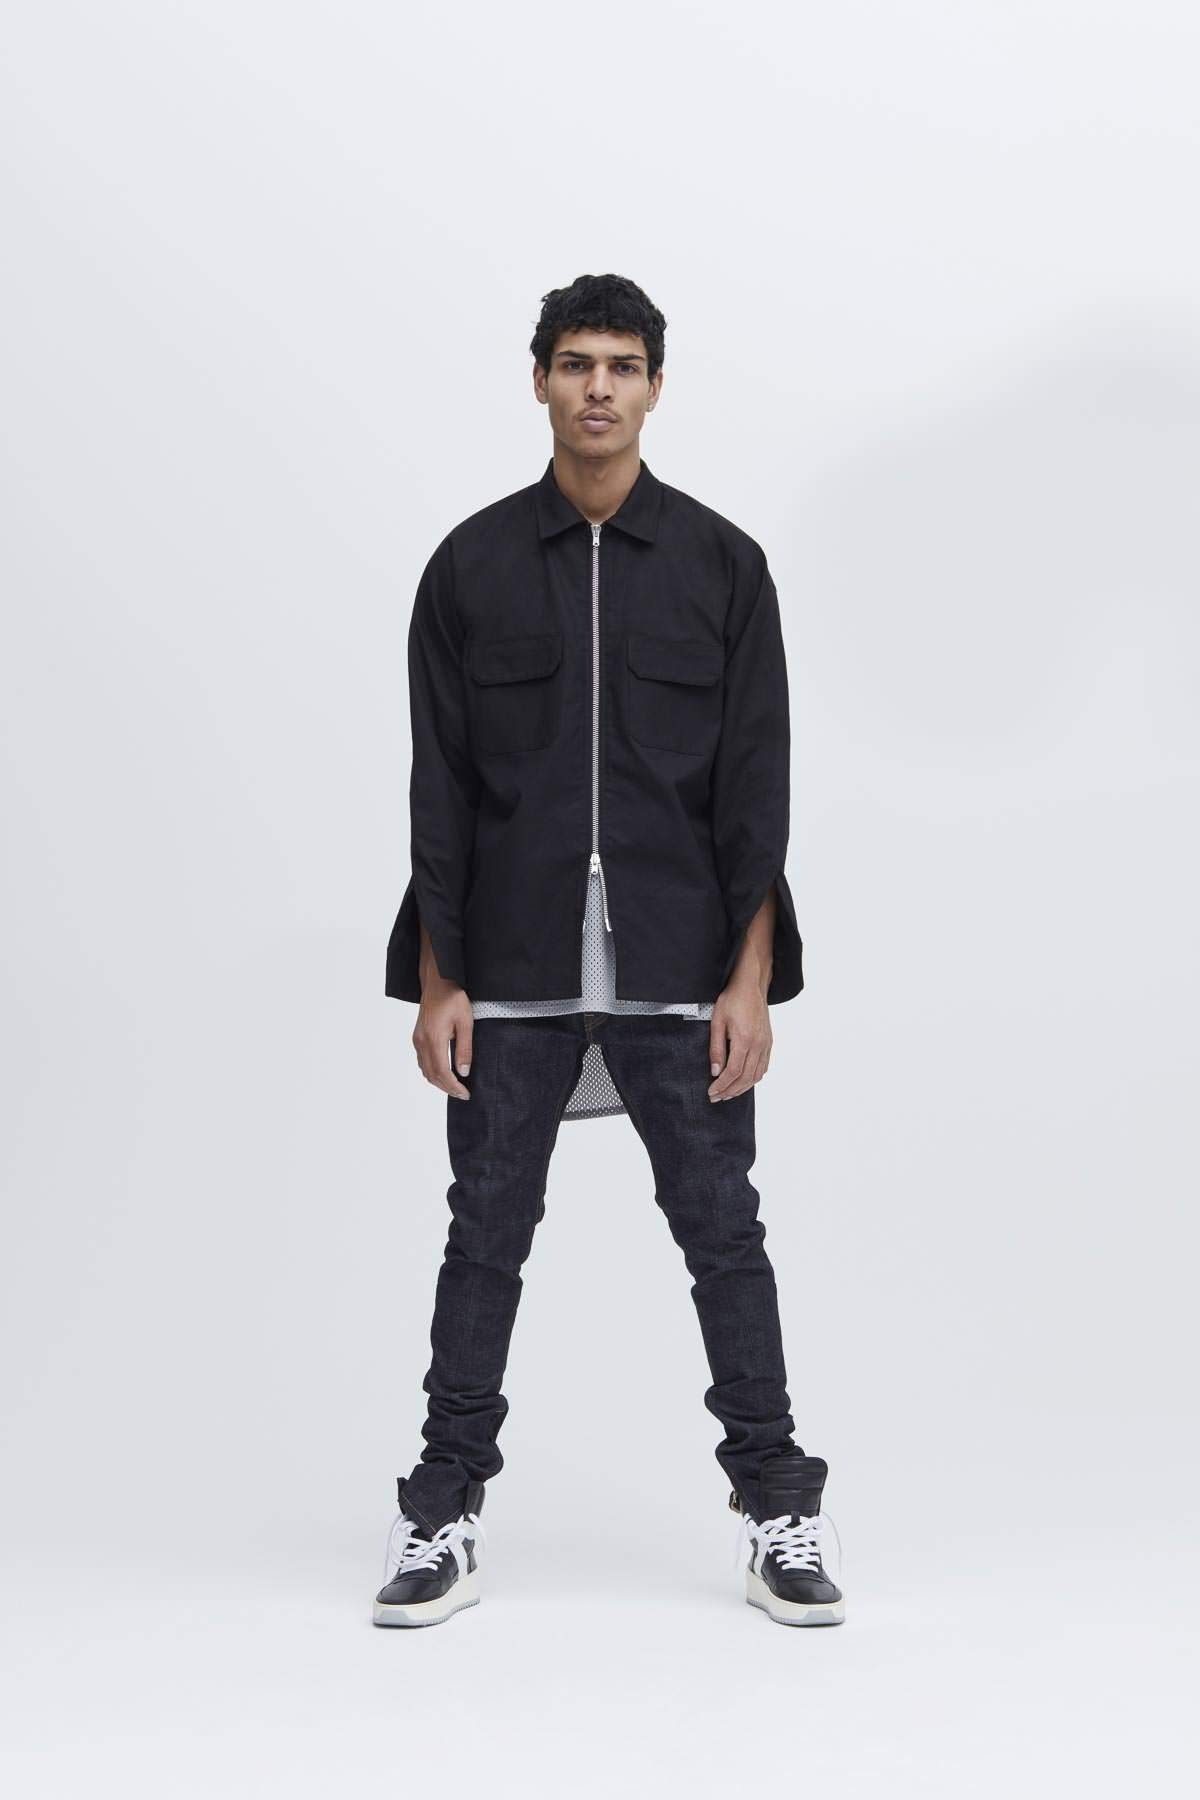 Fear of God - Fifth collection (12)